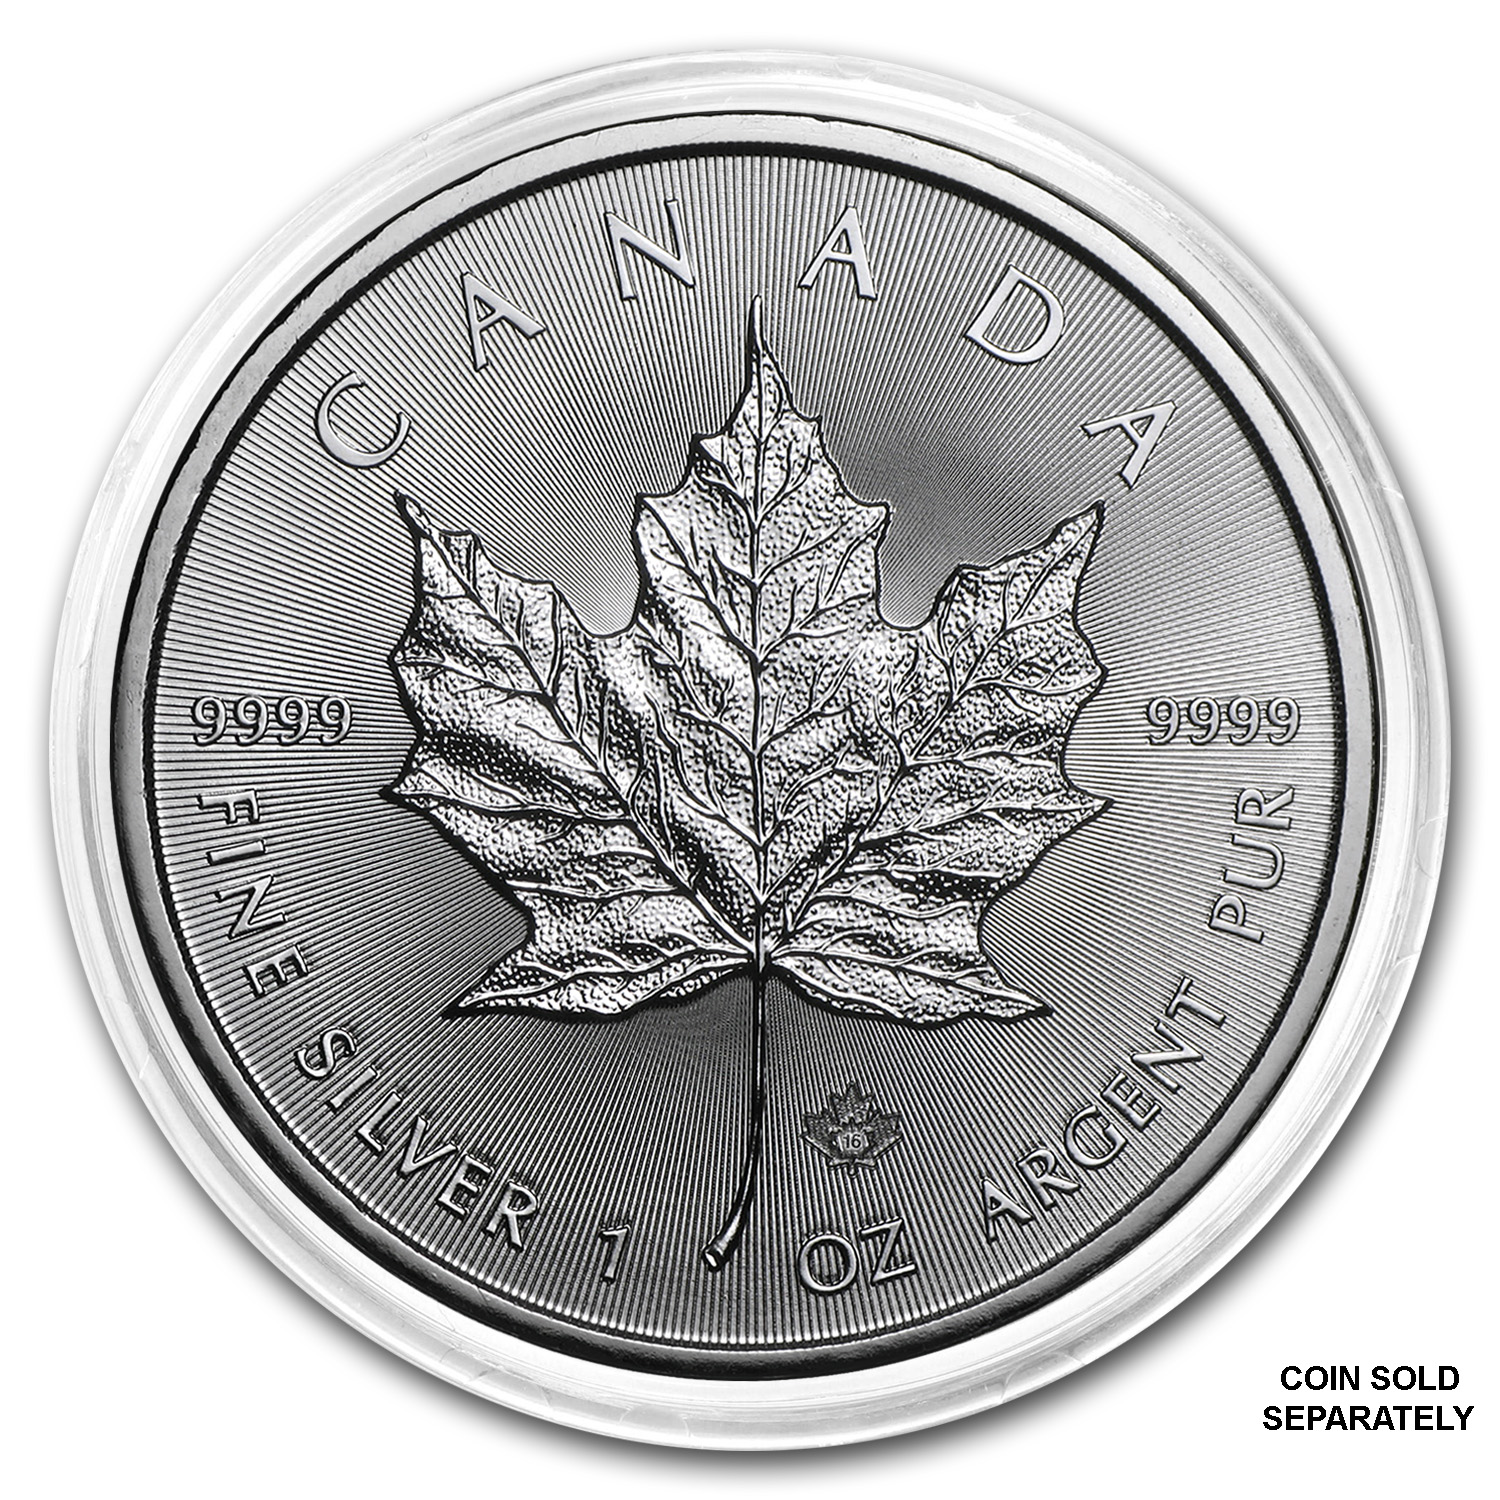 Silver Canadian Maple Leaf Direct Fit Capsule — 1 oz